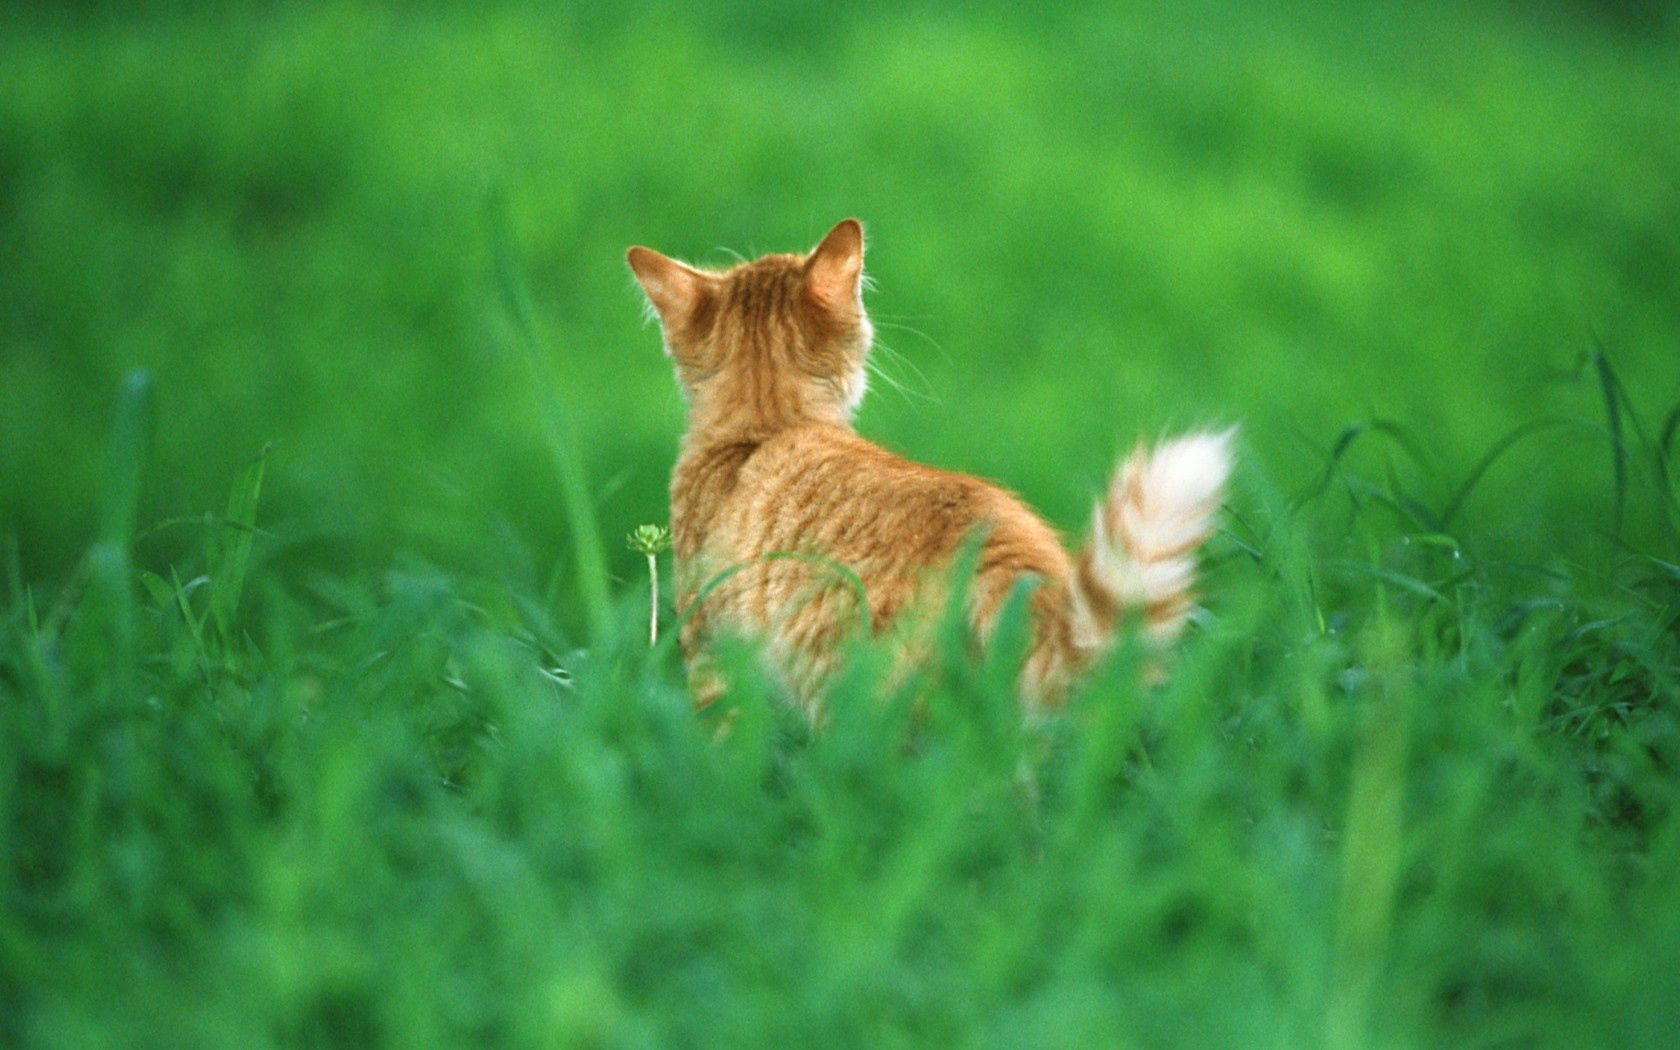 73444 download wallpaper Animals, Cat, Redhead, Grass, Tail screensavers and pictures for free